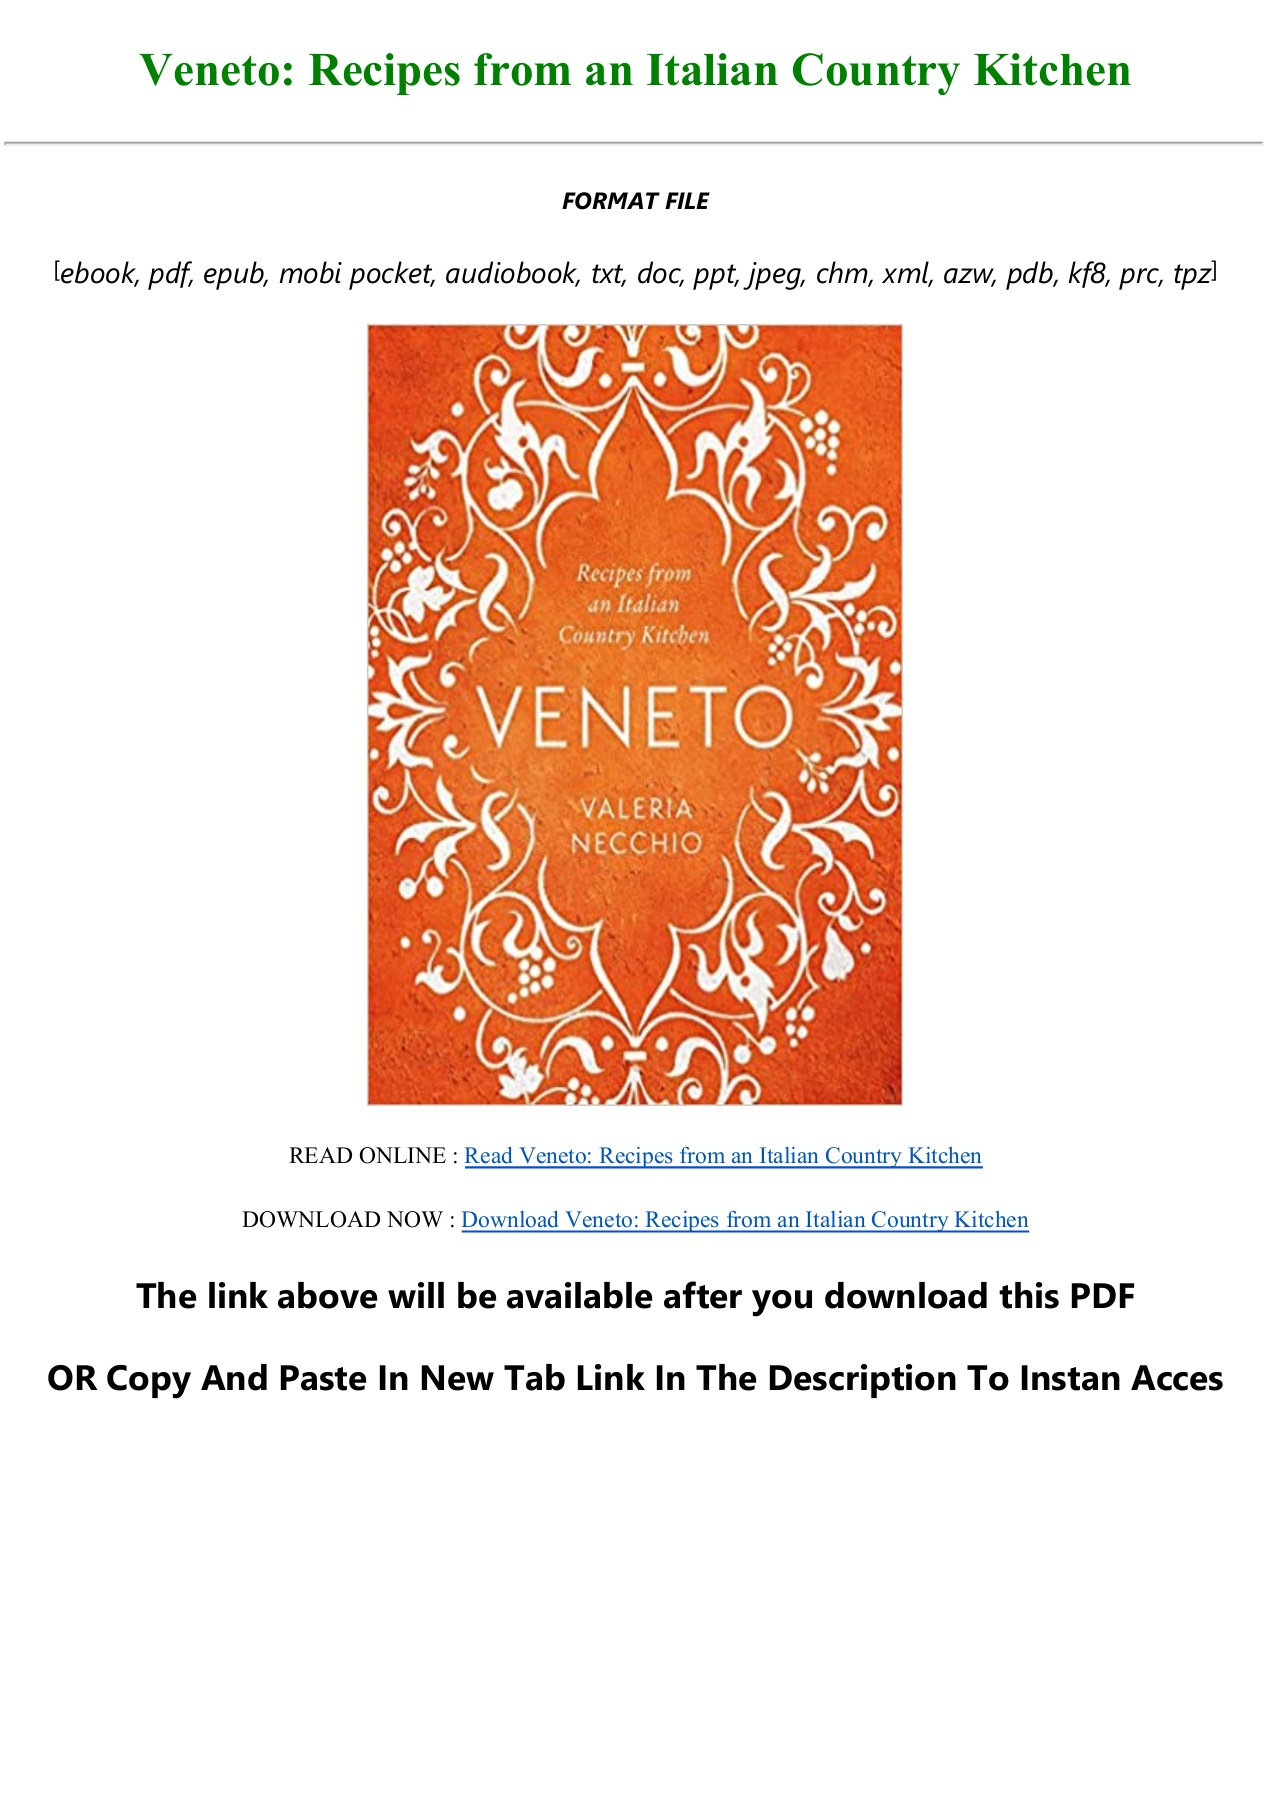 Ebook Veneto Recipes From An Italian Country Kitchen For Any Device Flip Ebook Pages 1 3 Anyflip Anyflip